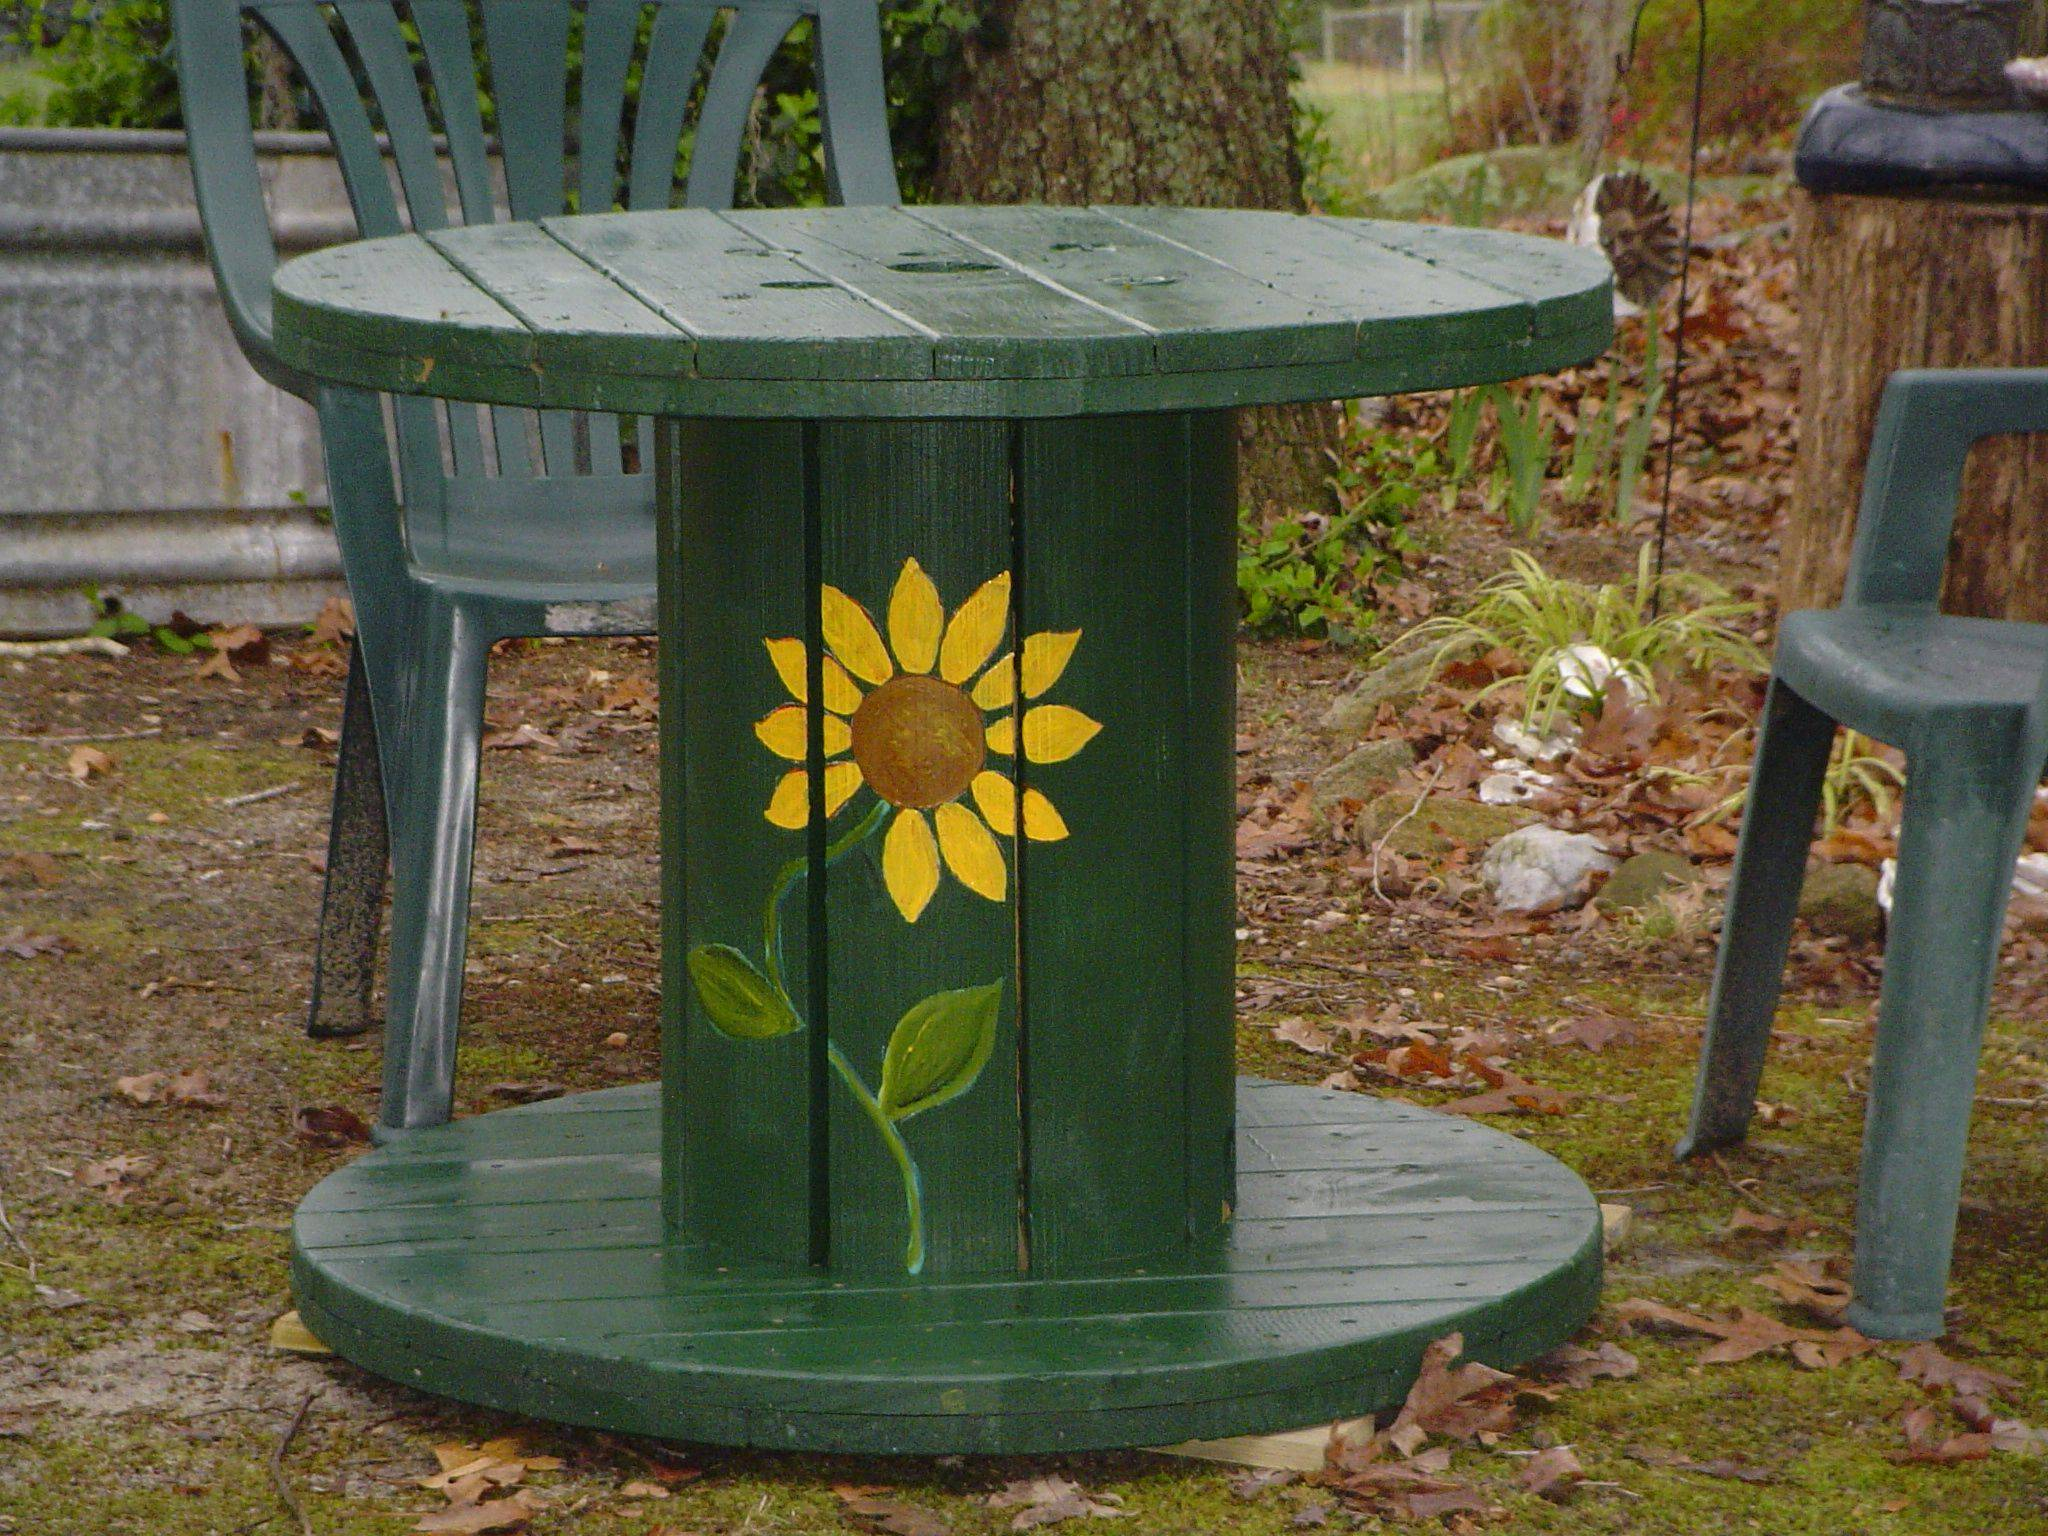 Incredible Wooden Wire Spools Inspirational Wooden Cable Spool Garden Table